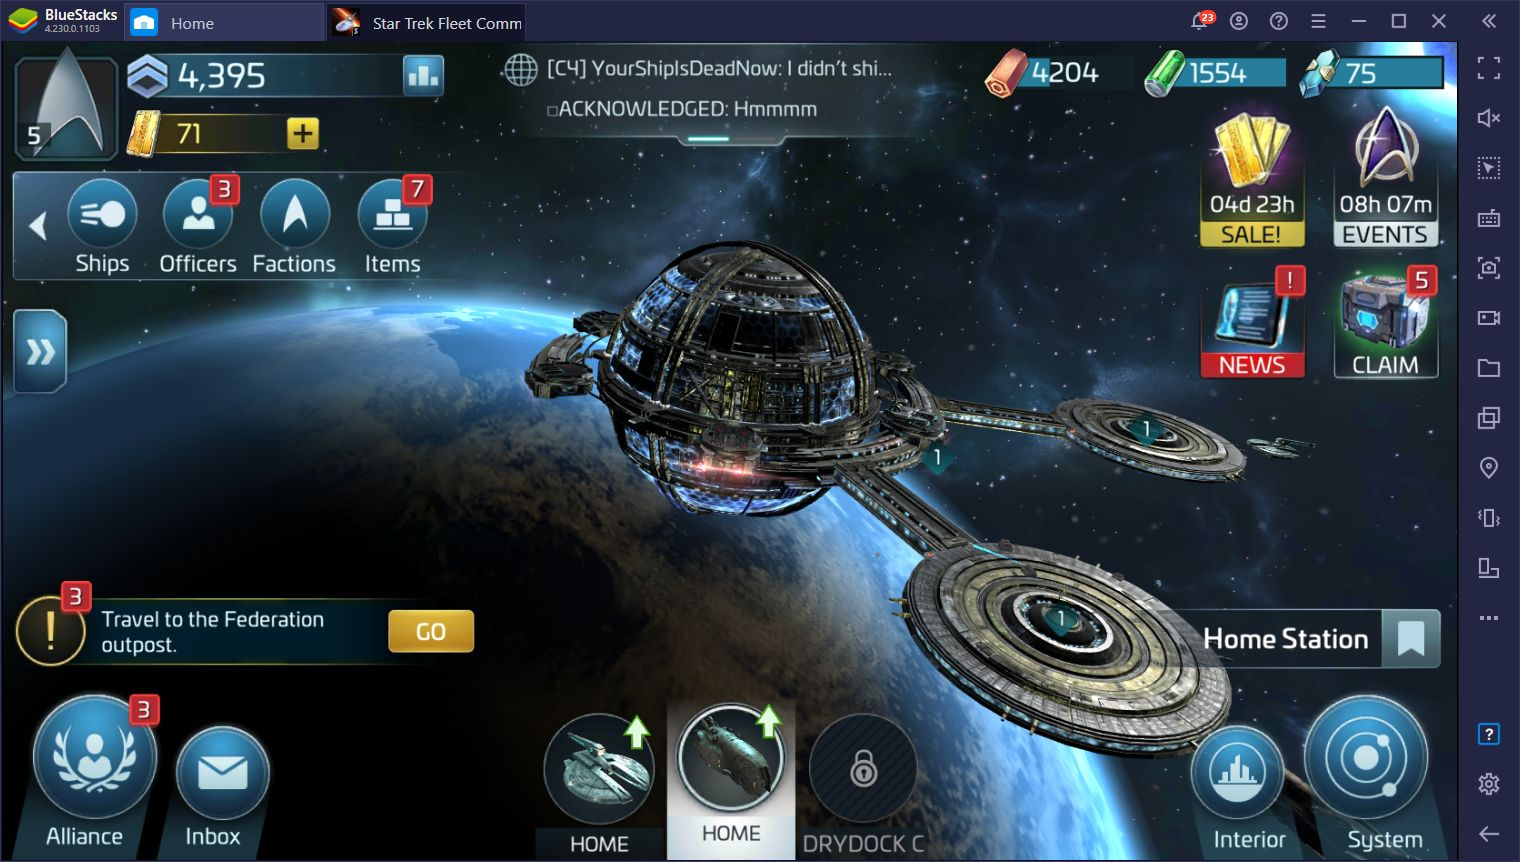 Star Trek Fleet Command September Update will Add Elements from the Entire Star Trek Timeline